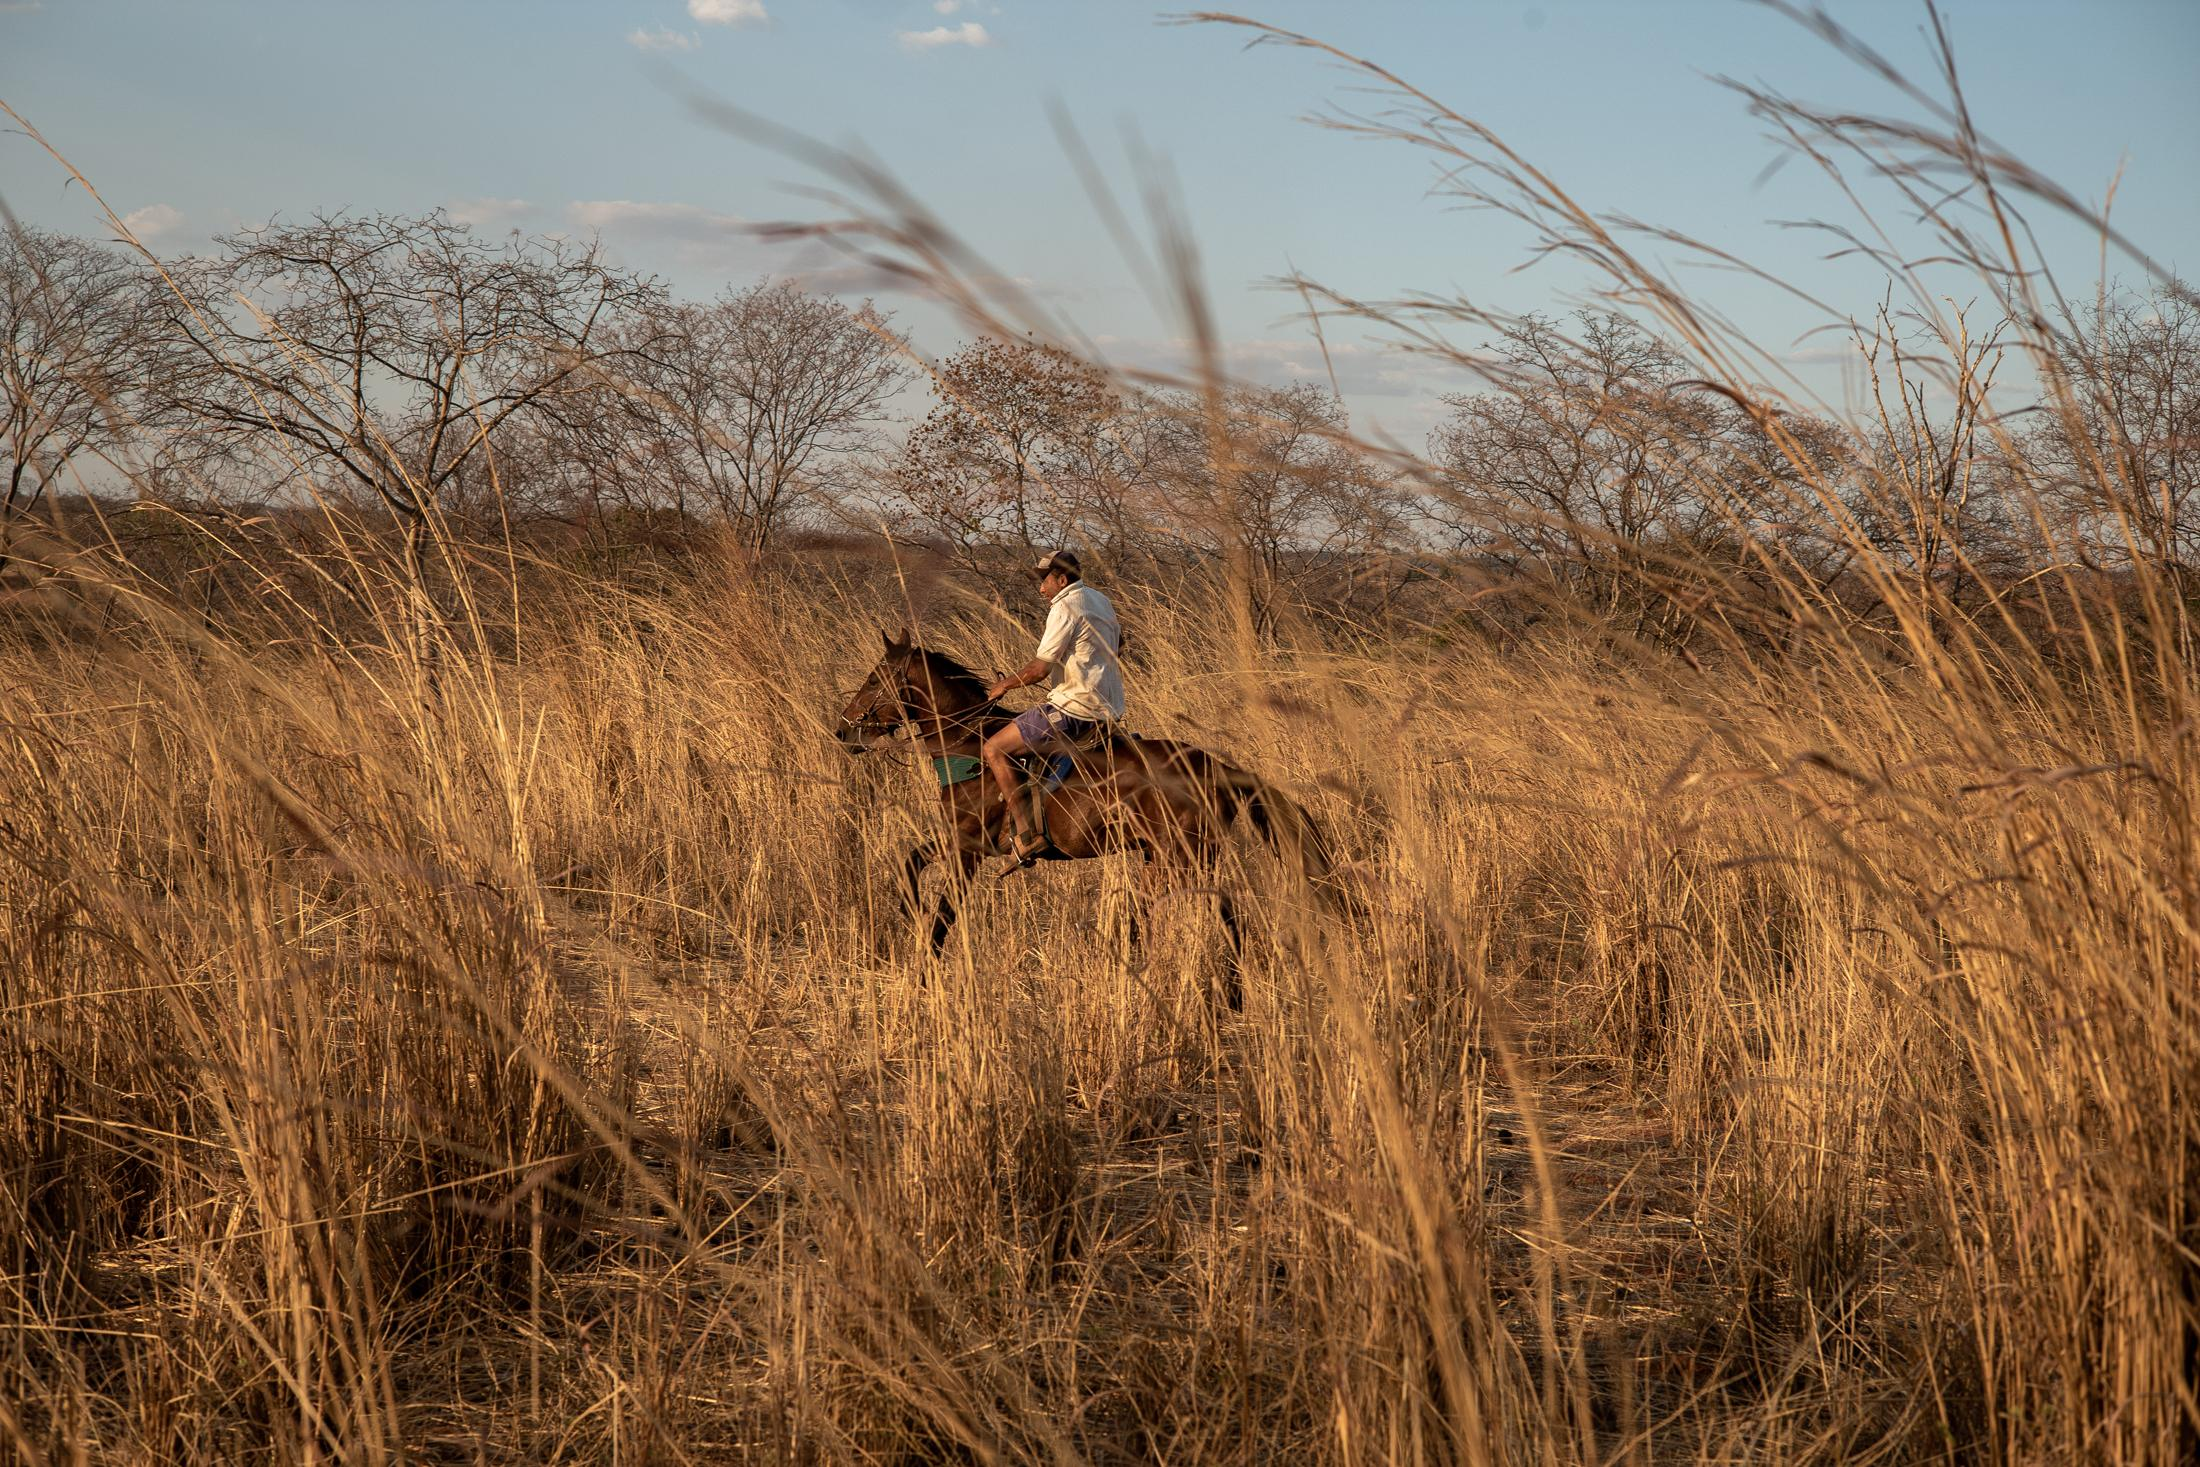 Edvar Tavares Rodrigues. In southern Piaui (Brazil), bordering the states of Tocantins and Bahia, deforestation and intensive agriculture have led a region to become a great desert. And that advances with speed.